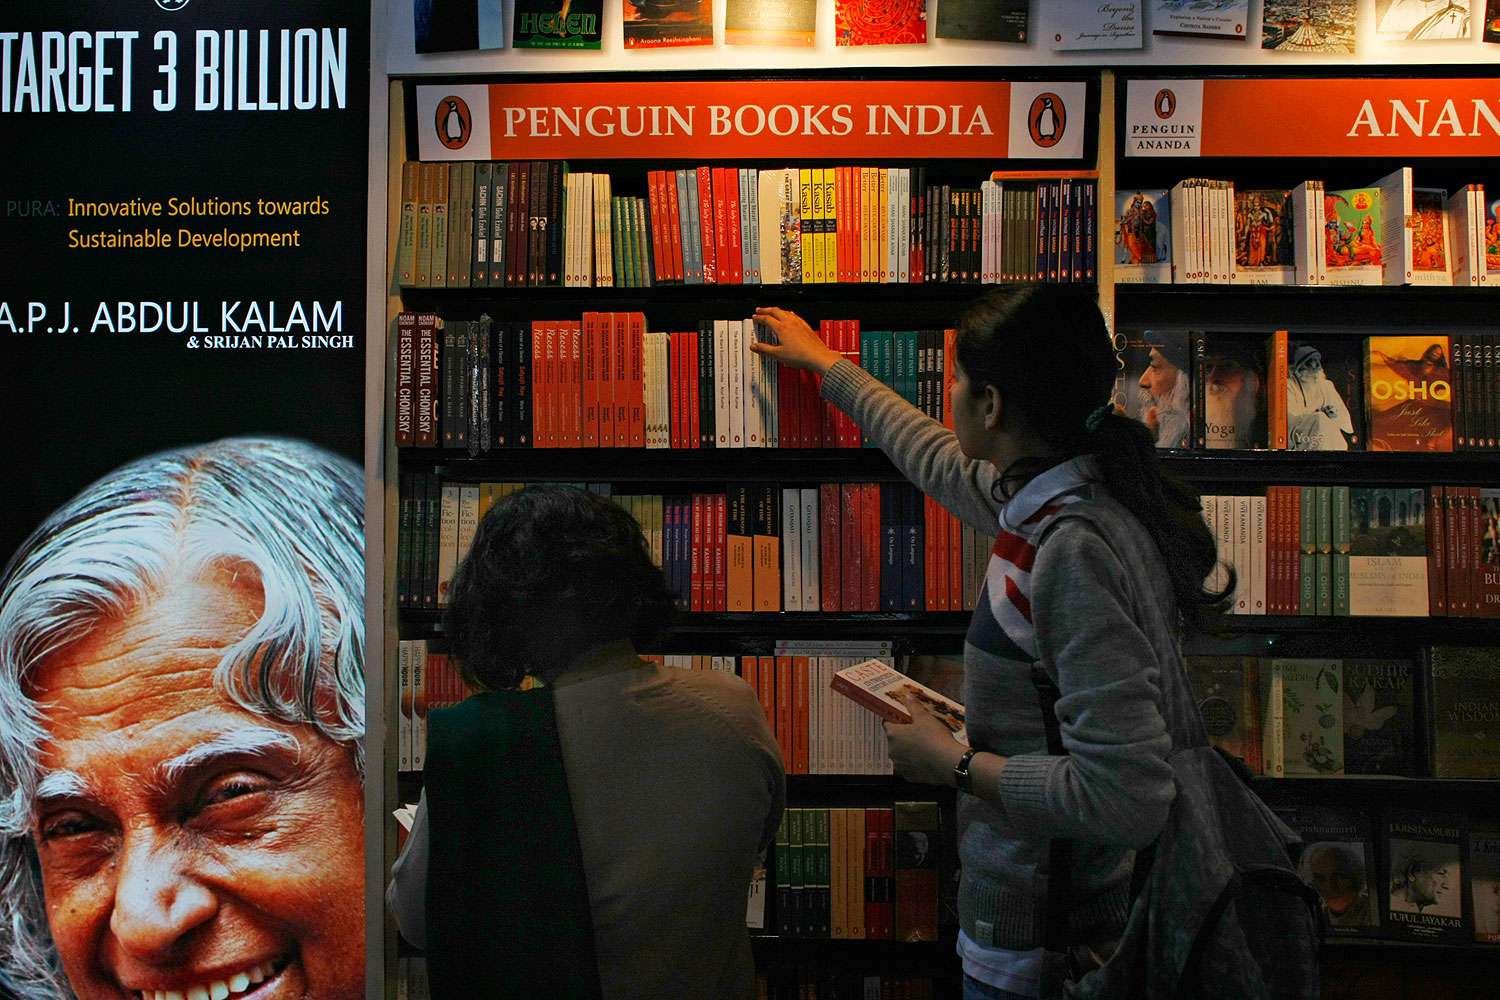 Indian women browse through Penguin edition books on display at the New Delhi World Book Fair in New Delhi in 2012